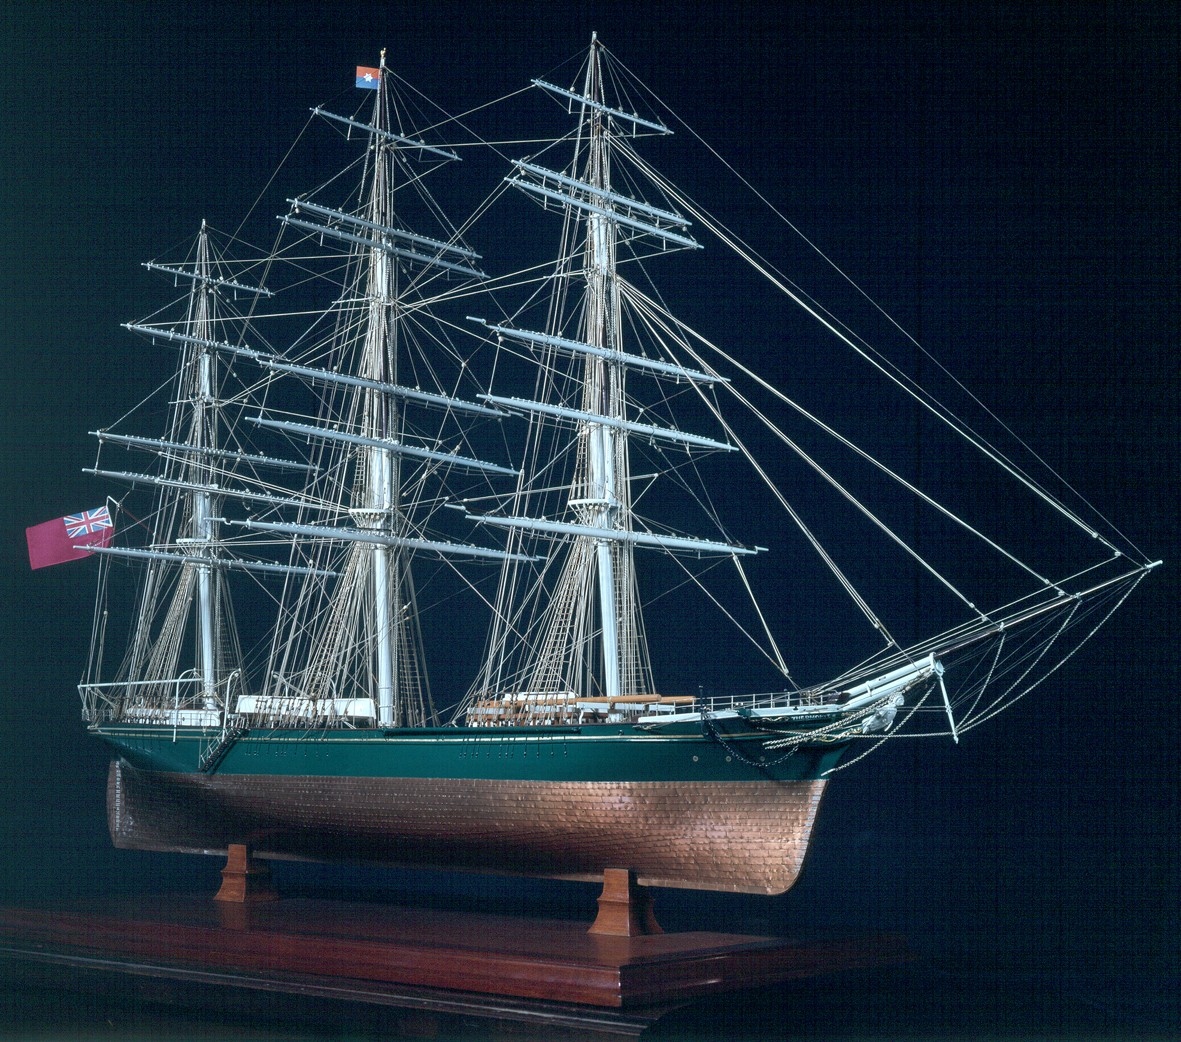 ShipModel_SSThermopylae_AberdeenMaritimeMuseum_ImageCredit_AberdeenCityCouncil_ArchivesMuseumsGalleriesCollections